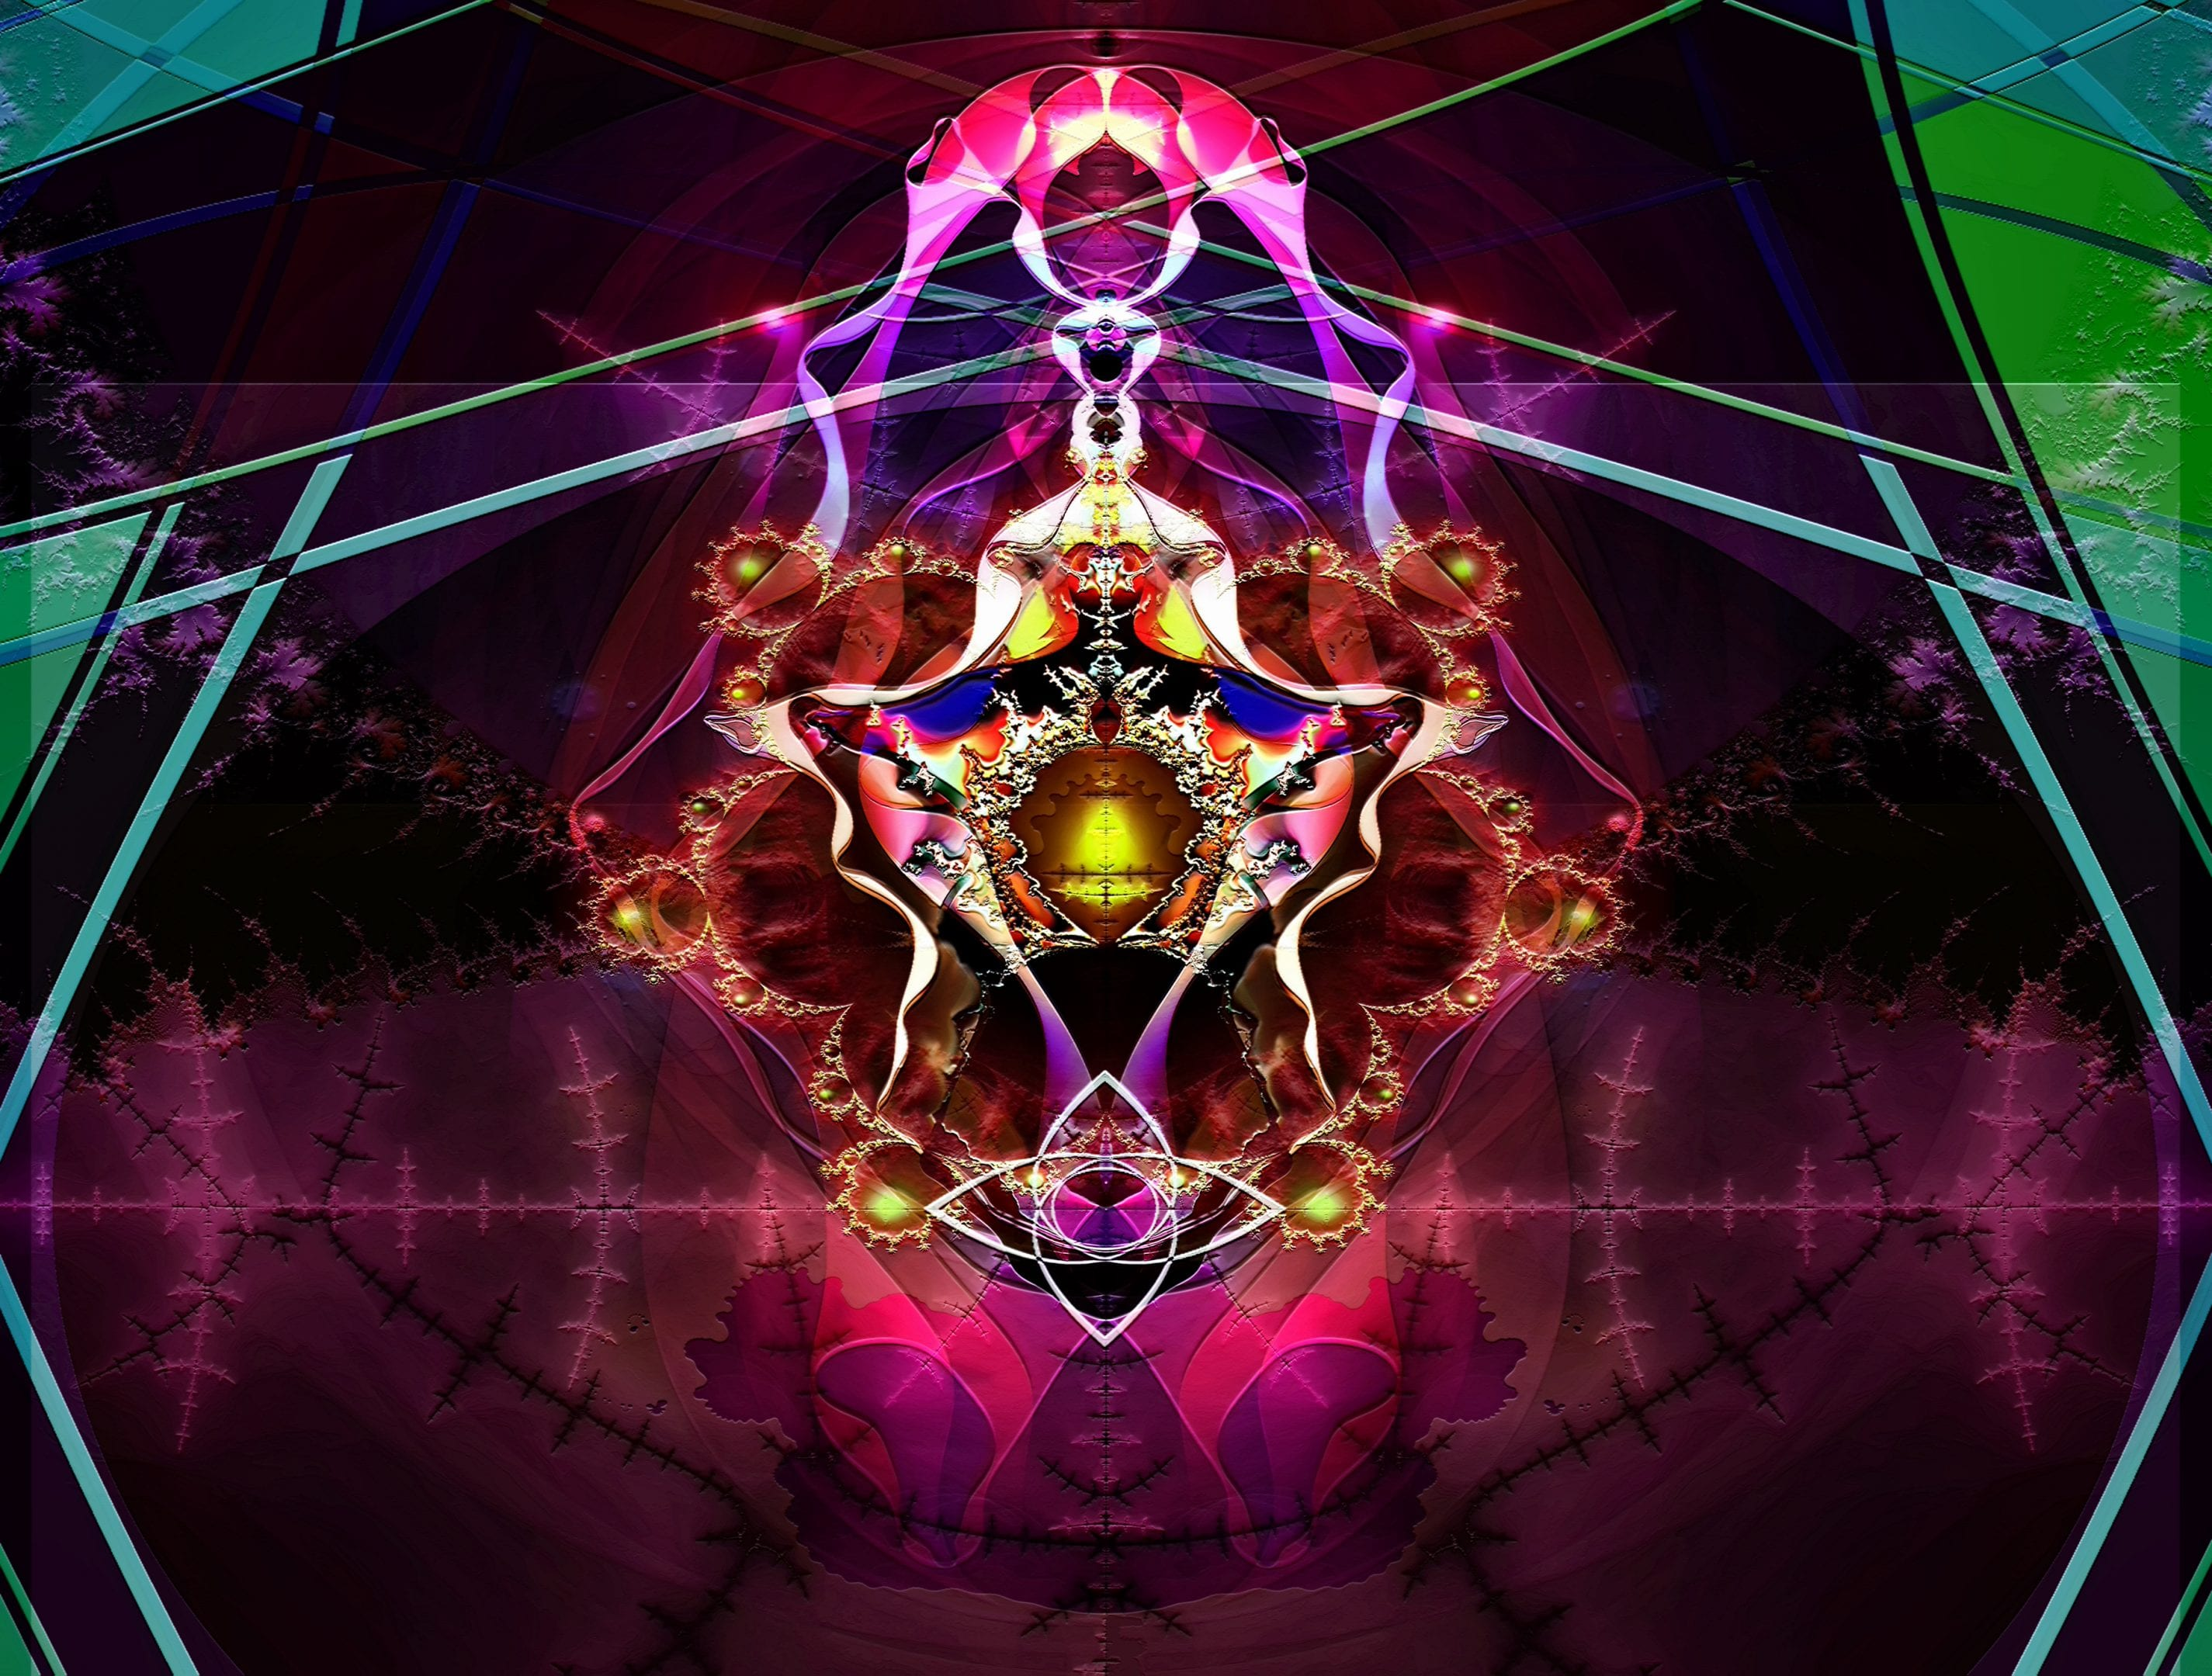 Fractal image of throne room with altar at center. Image only shows part of what is there in order to give an unobstructed view of things that would otherwise have been overlooked in the complexity.